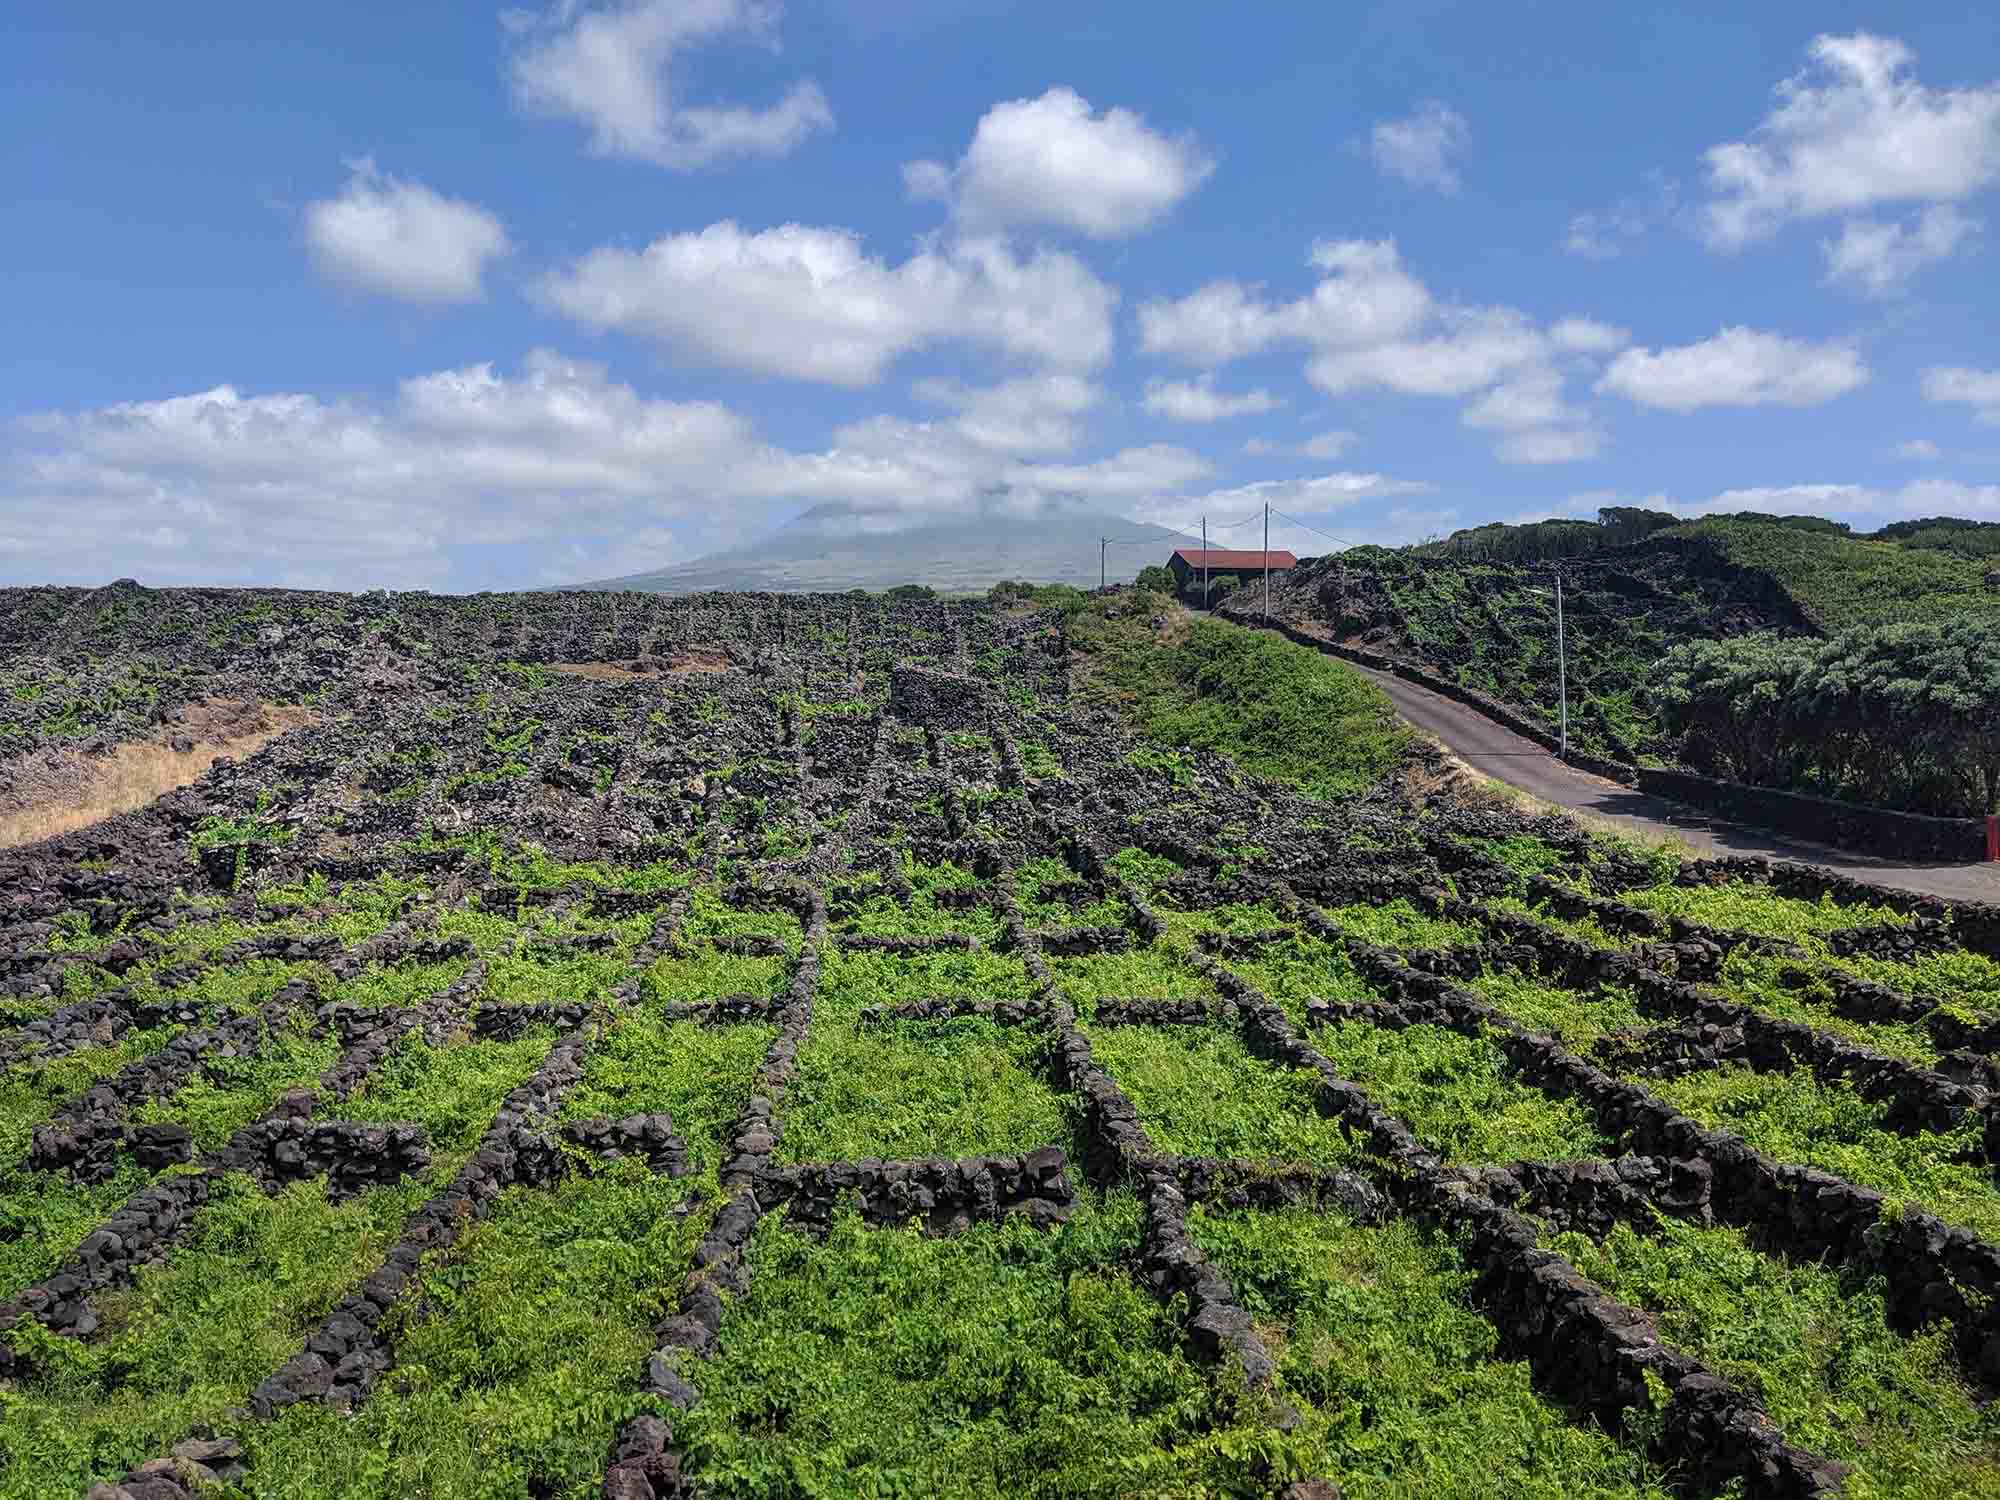 vineyards on Pico Island